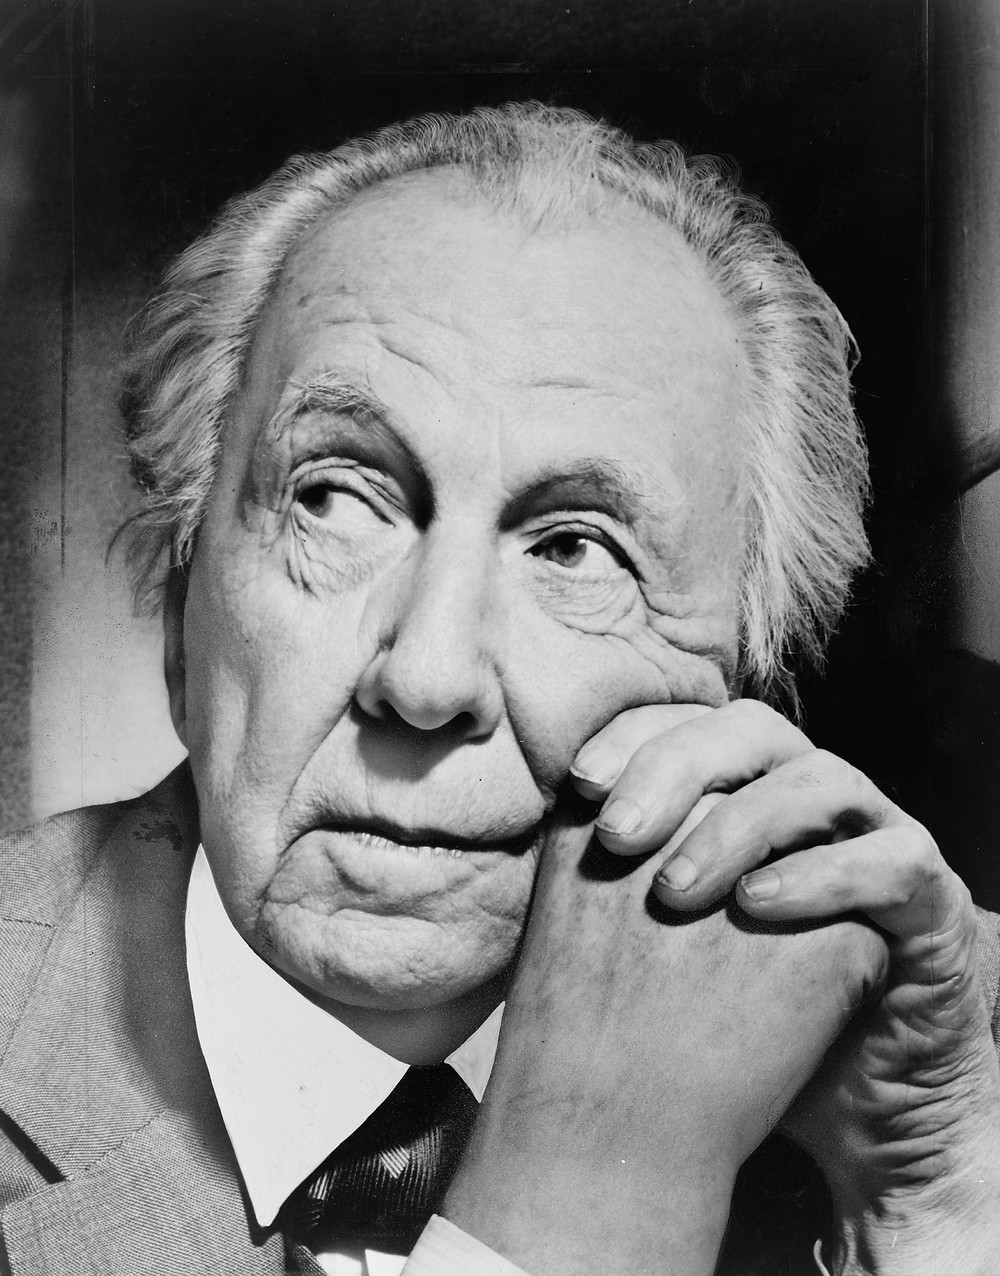 Portrait of Frank Lloyd Wright